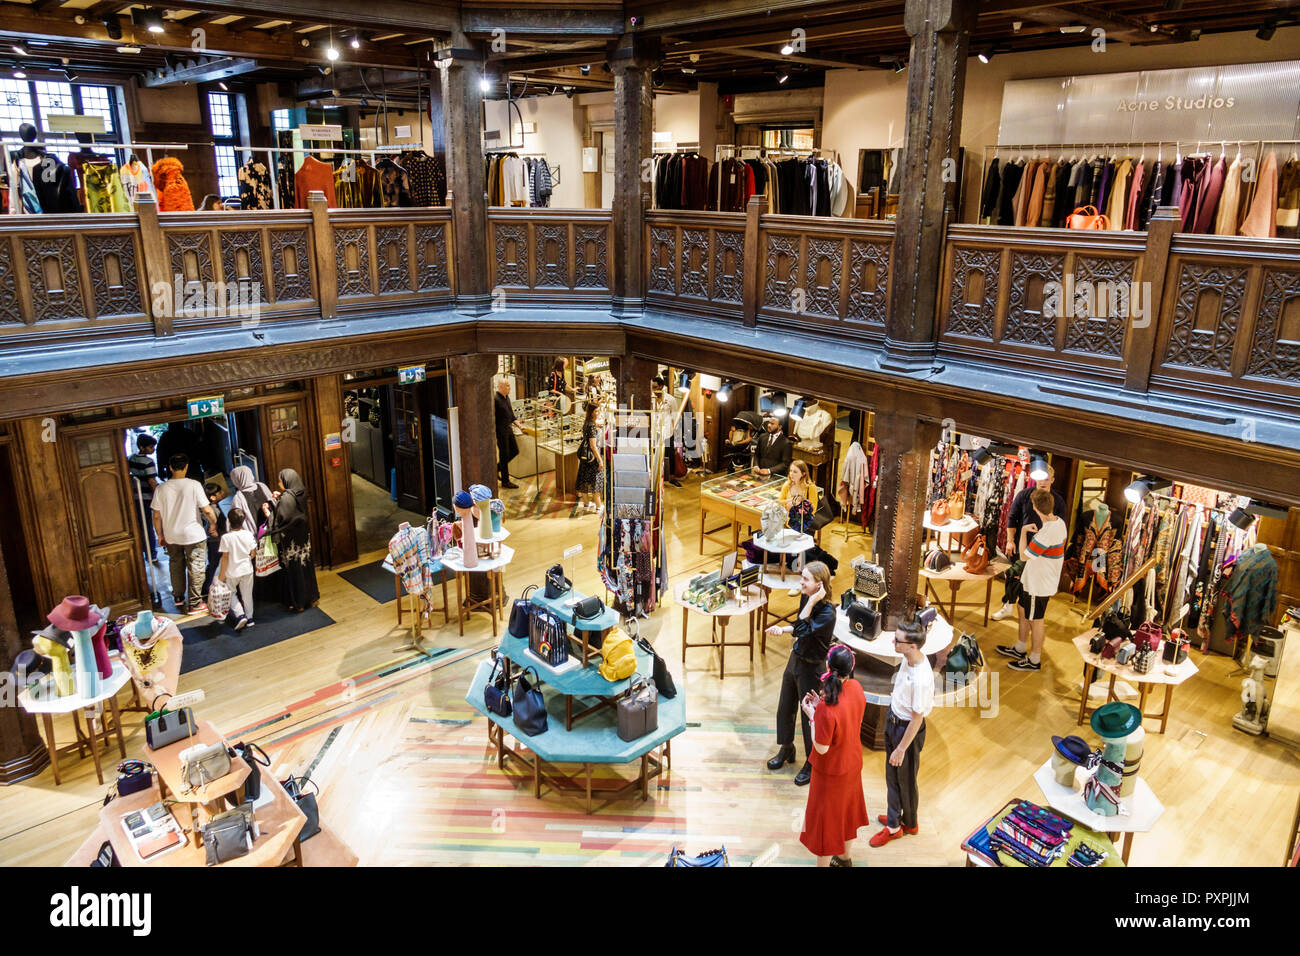 a1118cf276b4 London England United Kingdom Great Britain Soho Liberty Department Store  shopping luxury brands upmarket atrium lightwell